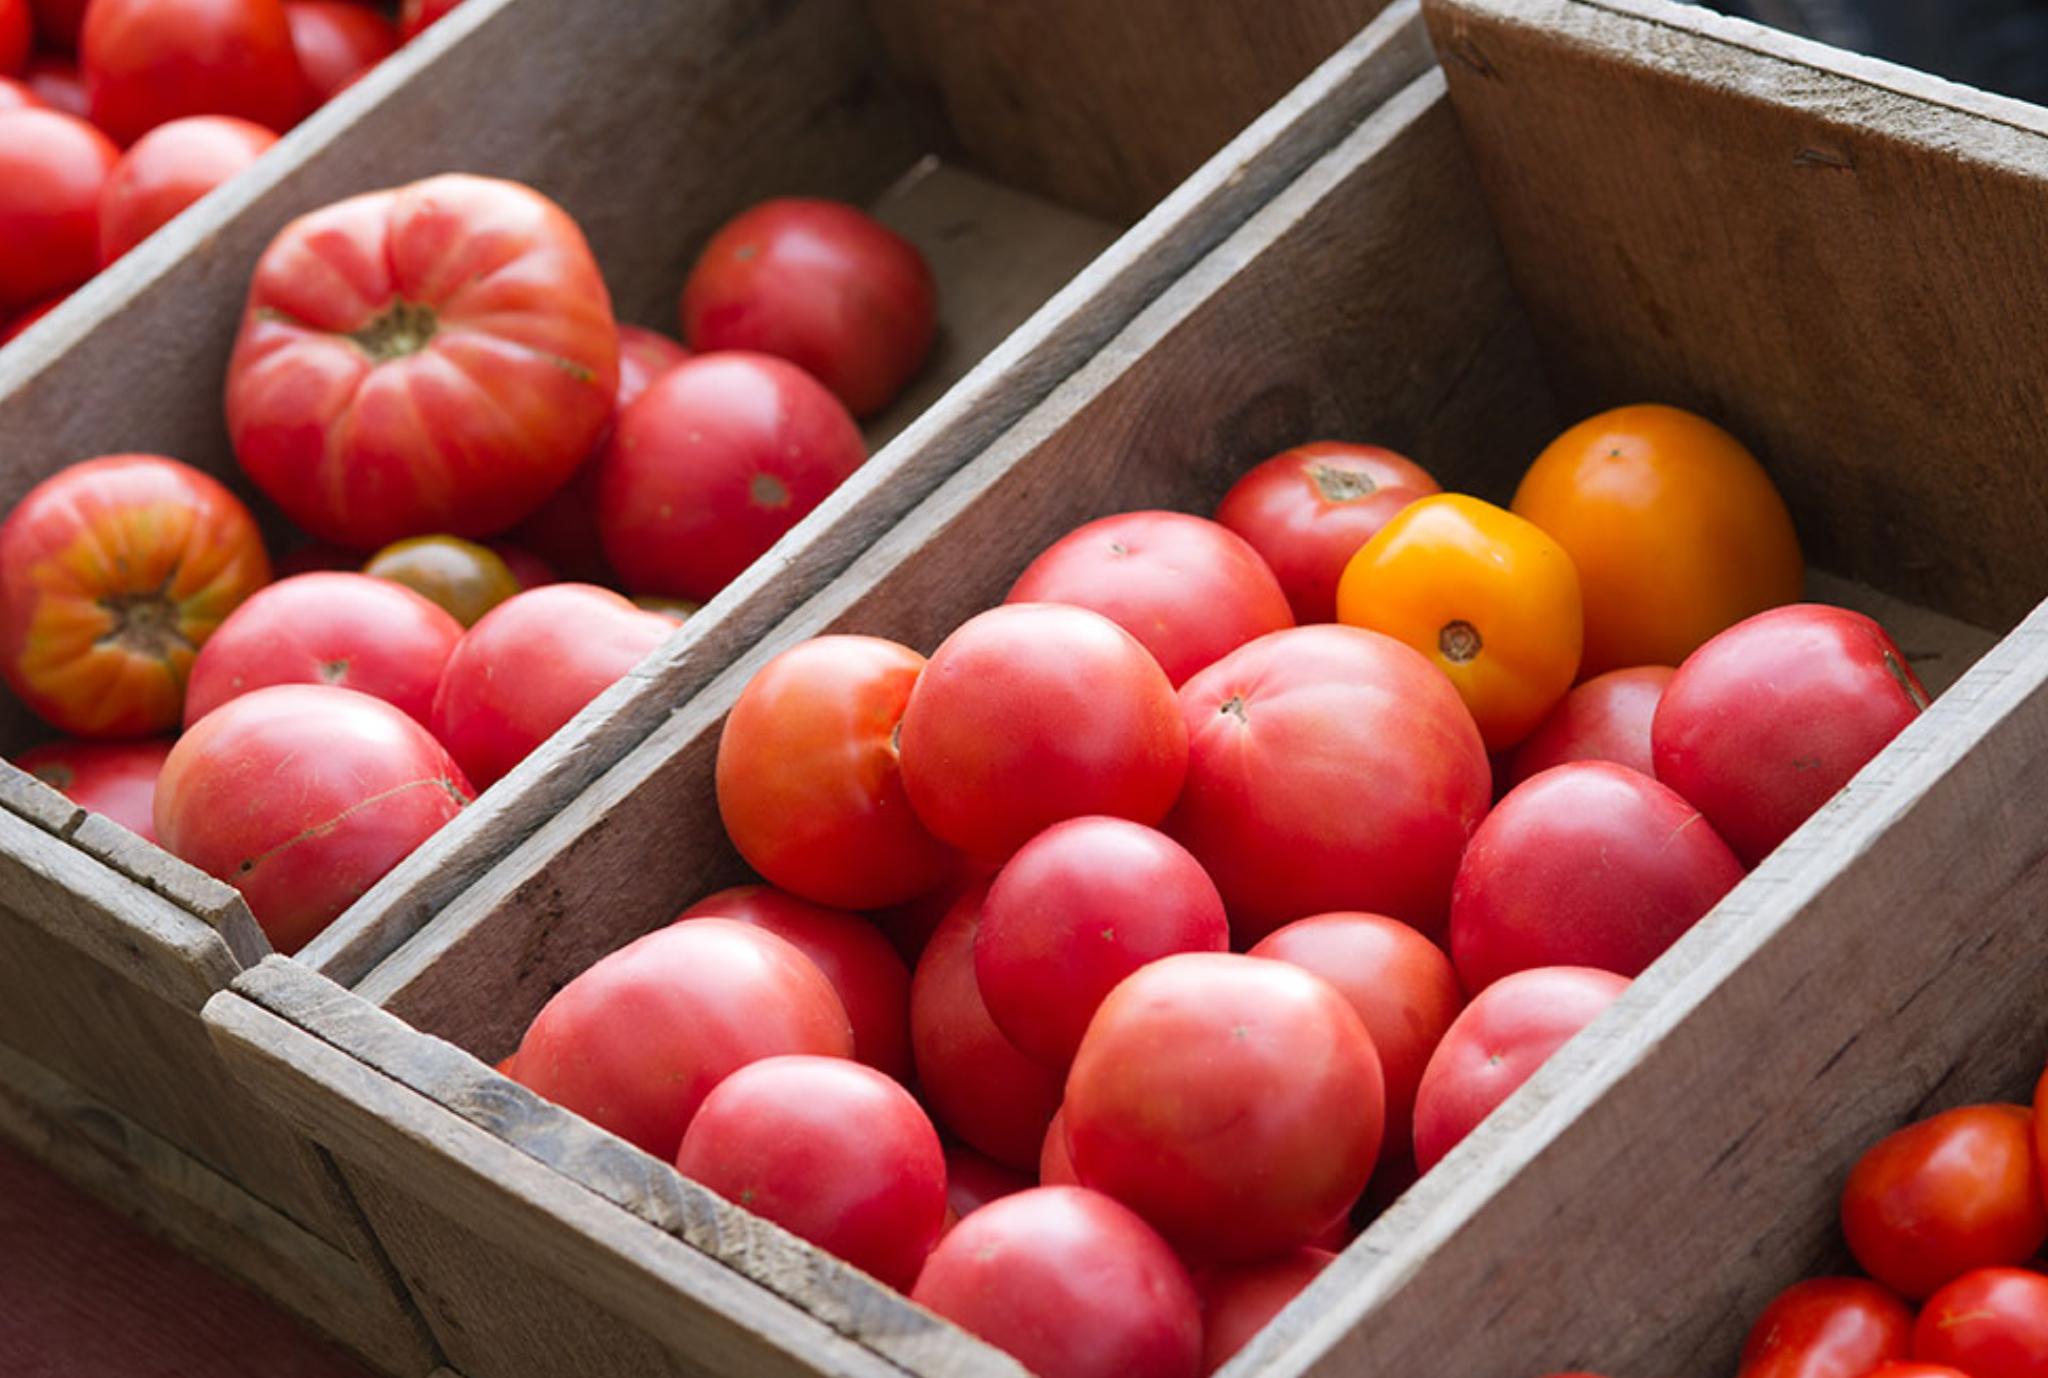 Fruits and Vegetables - Optimal Storage Conditions